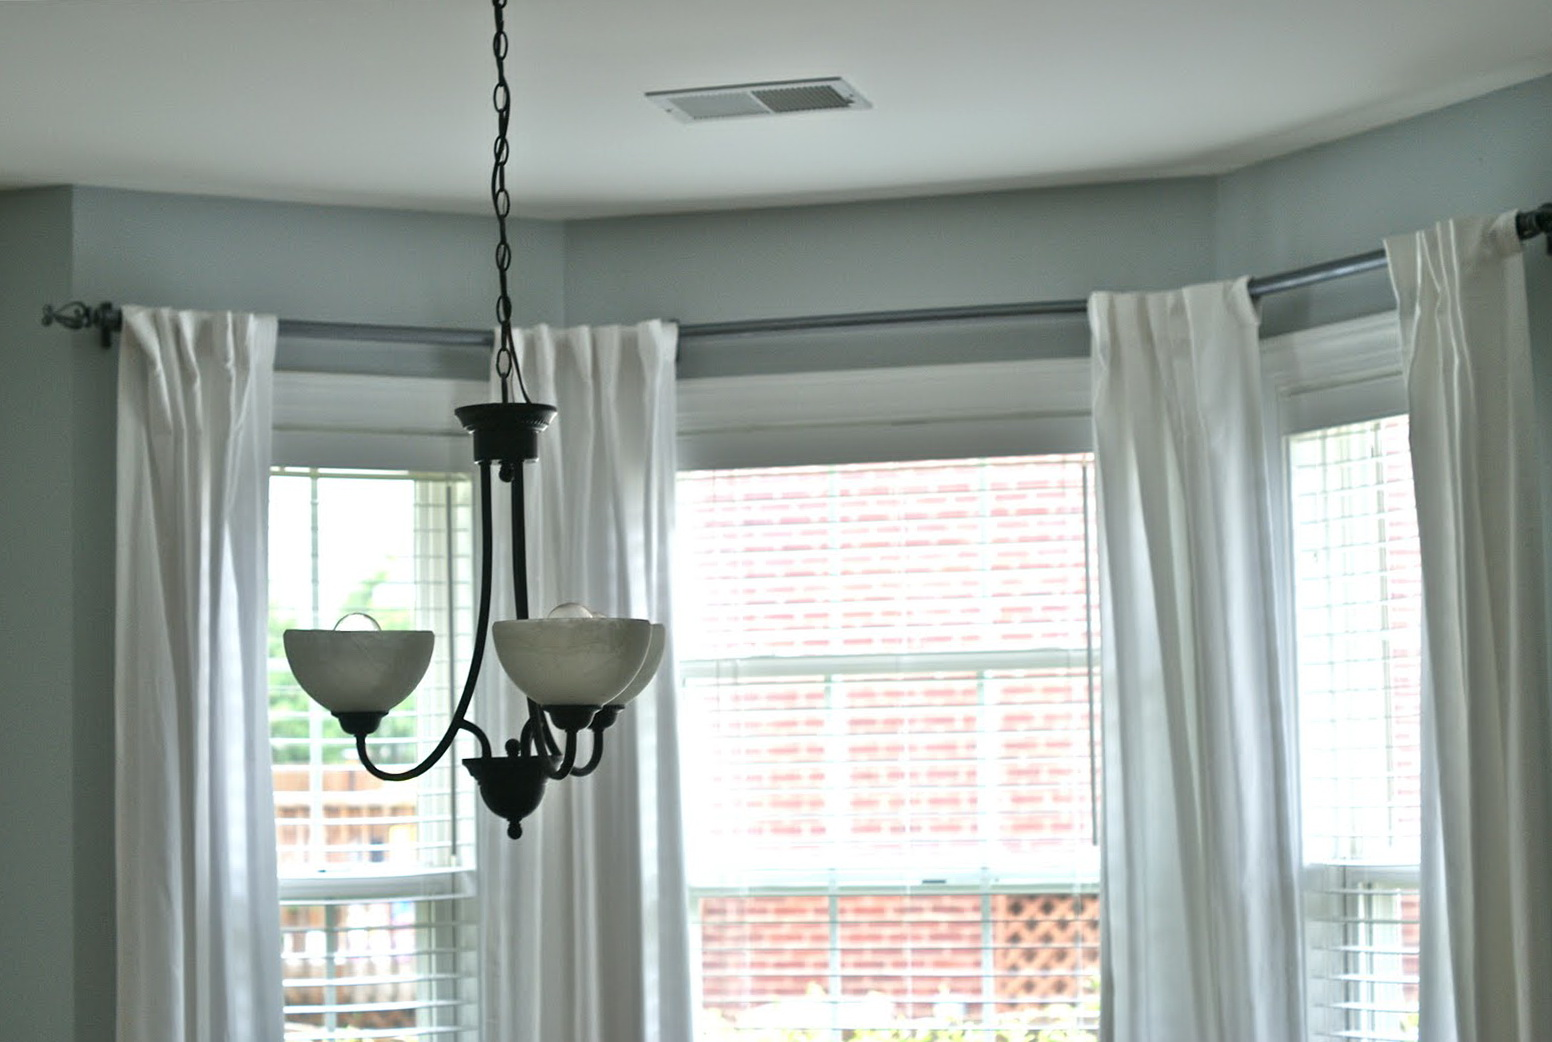 Curtain Rod For Bay Window Lowes | Home Design Ideas